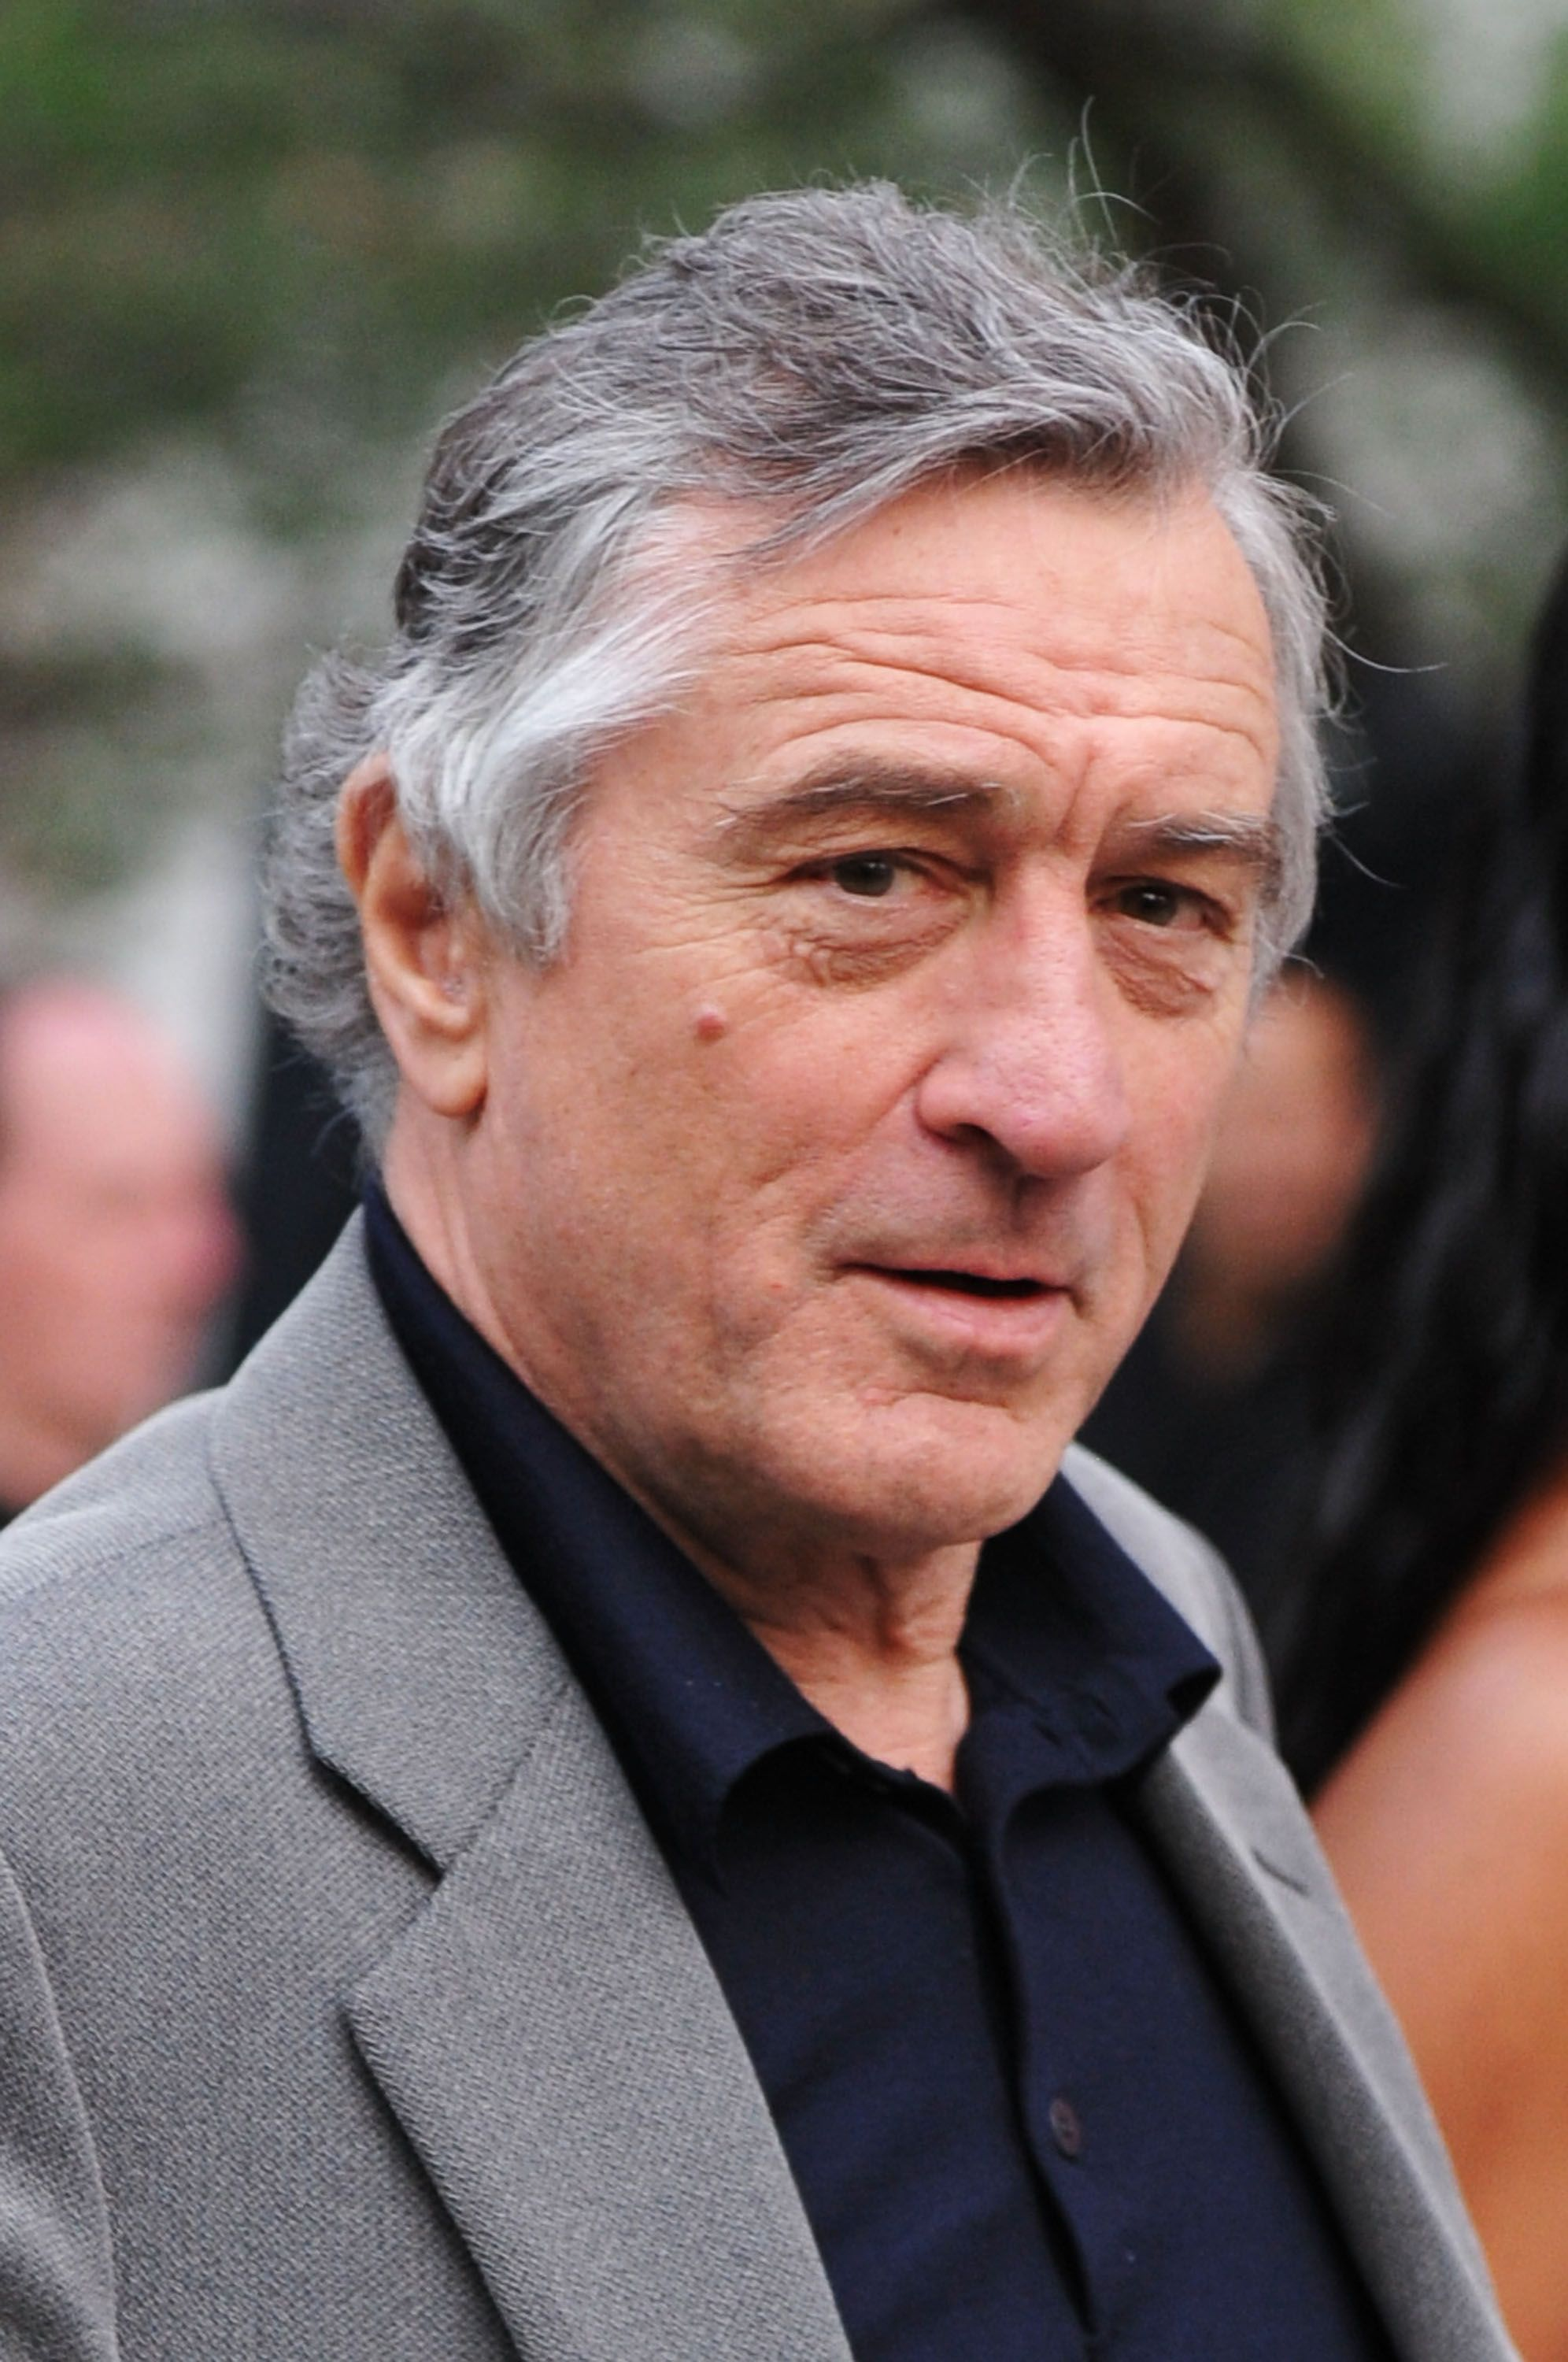 Robert De Niro attends the Vanity Fair party before the 2010 Tribeca Film Festival at the New York State Supreme Court on April 20, 2010 in New York City. | Source: Getty Images